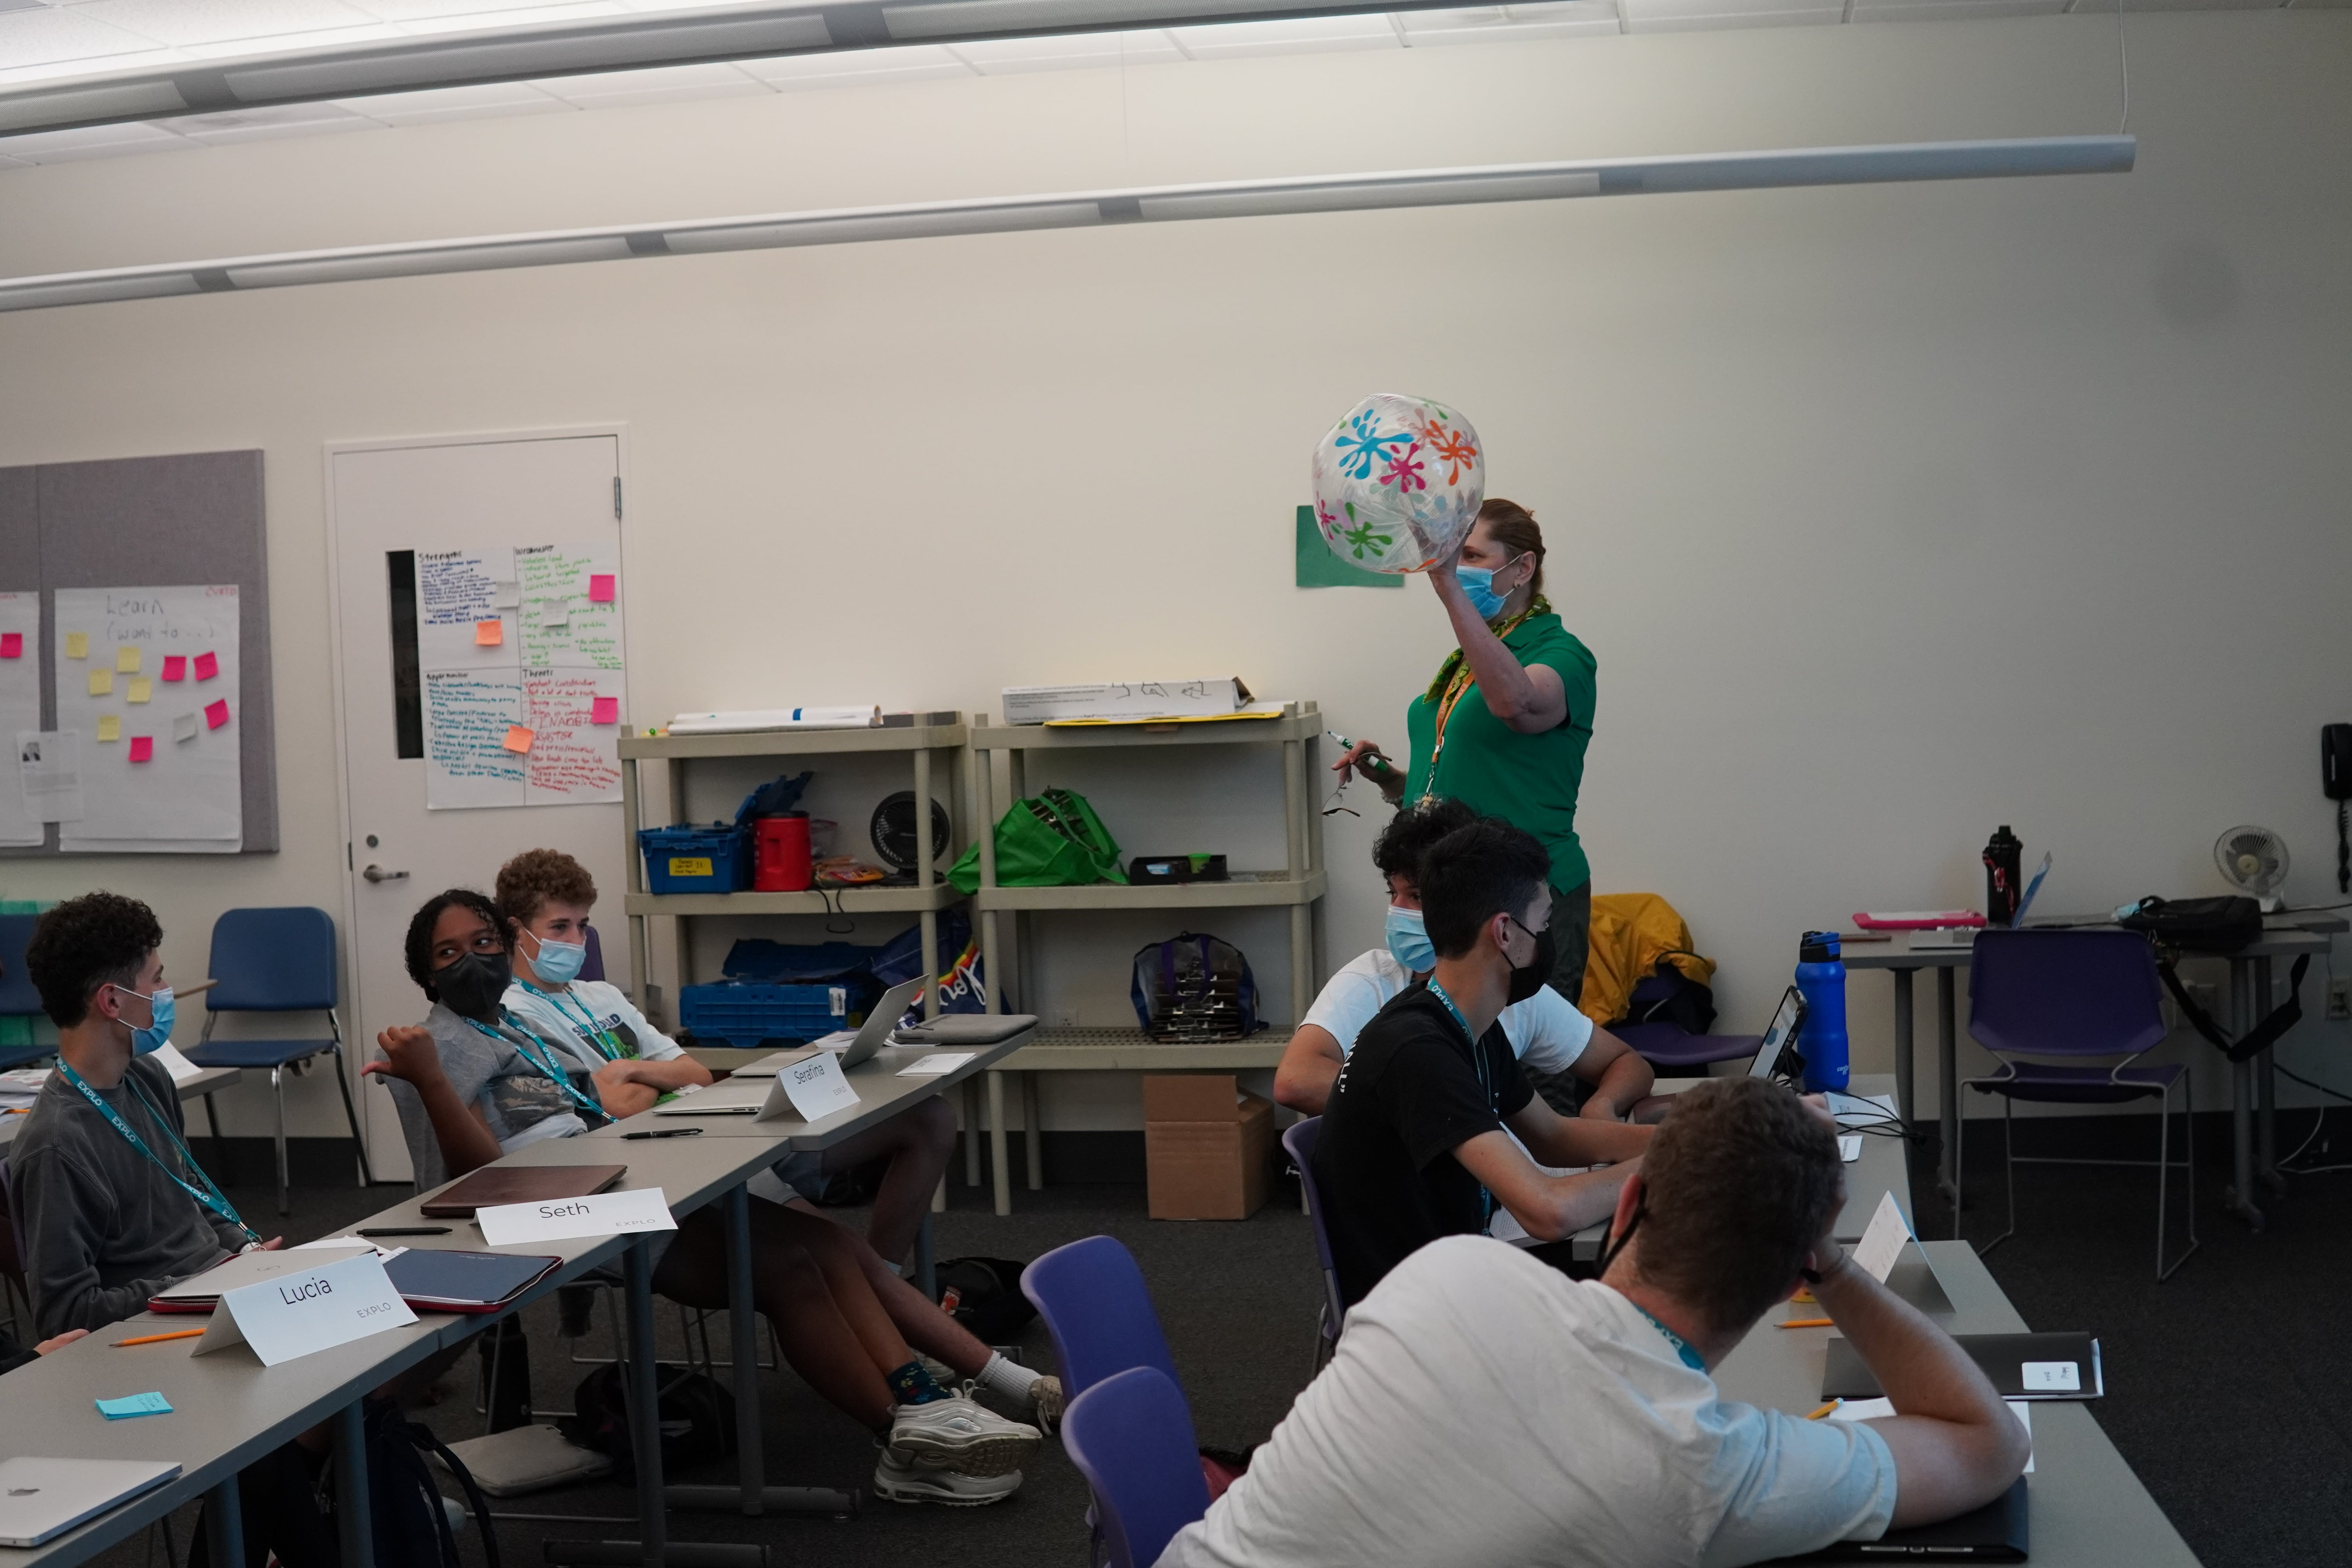 Lead Instructor Michelle holds up a beach ball to toss toward a student as a signifier as to who can answer a question.